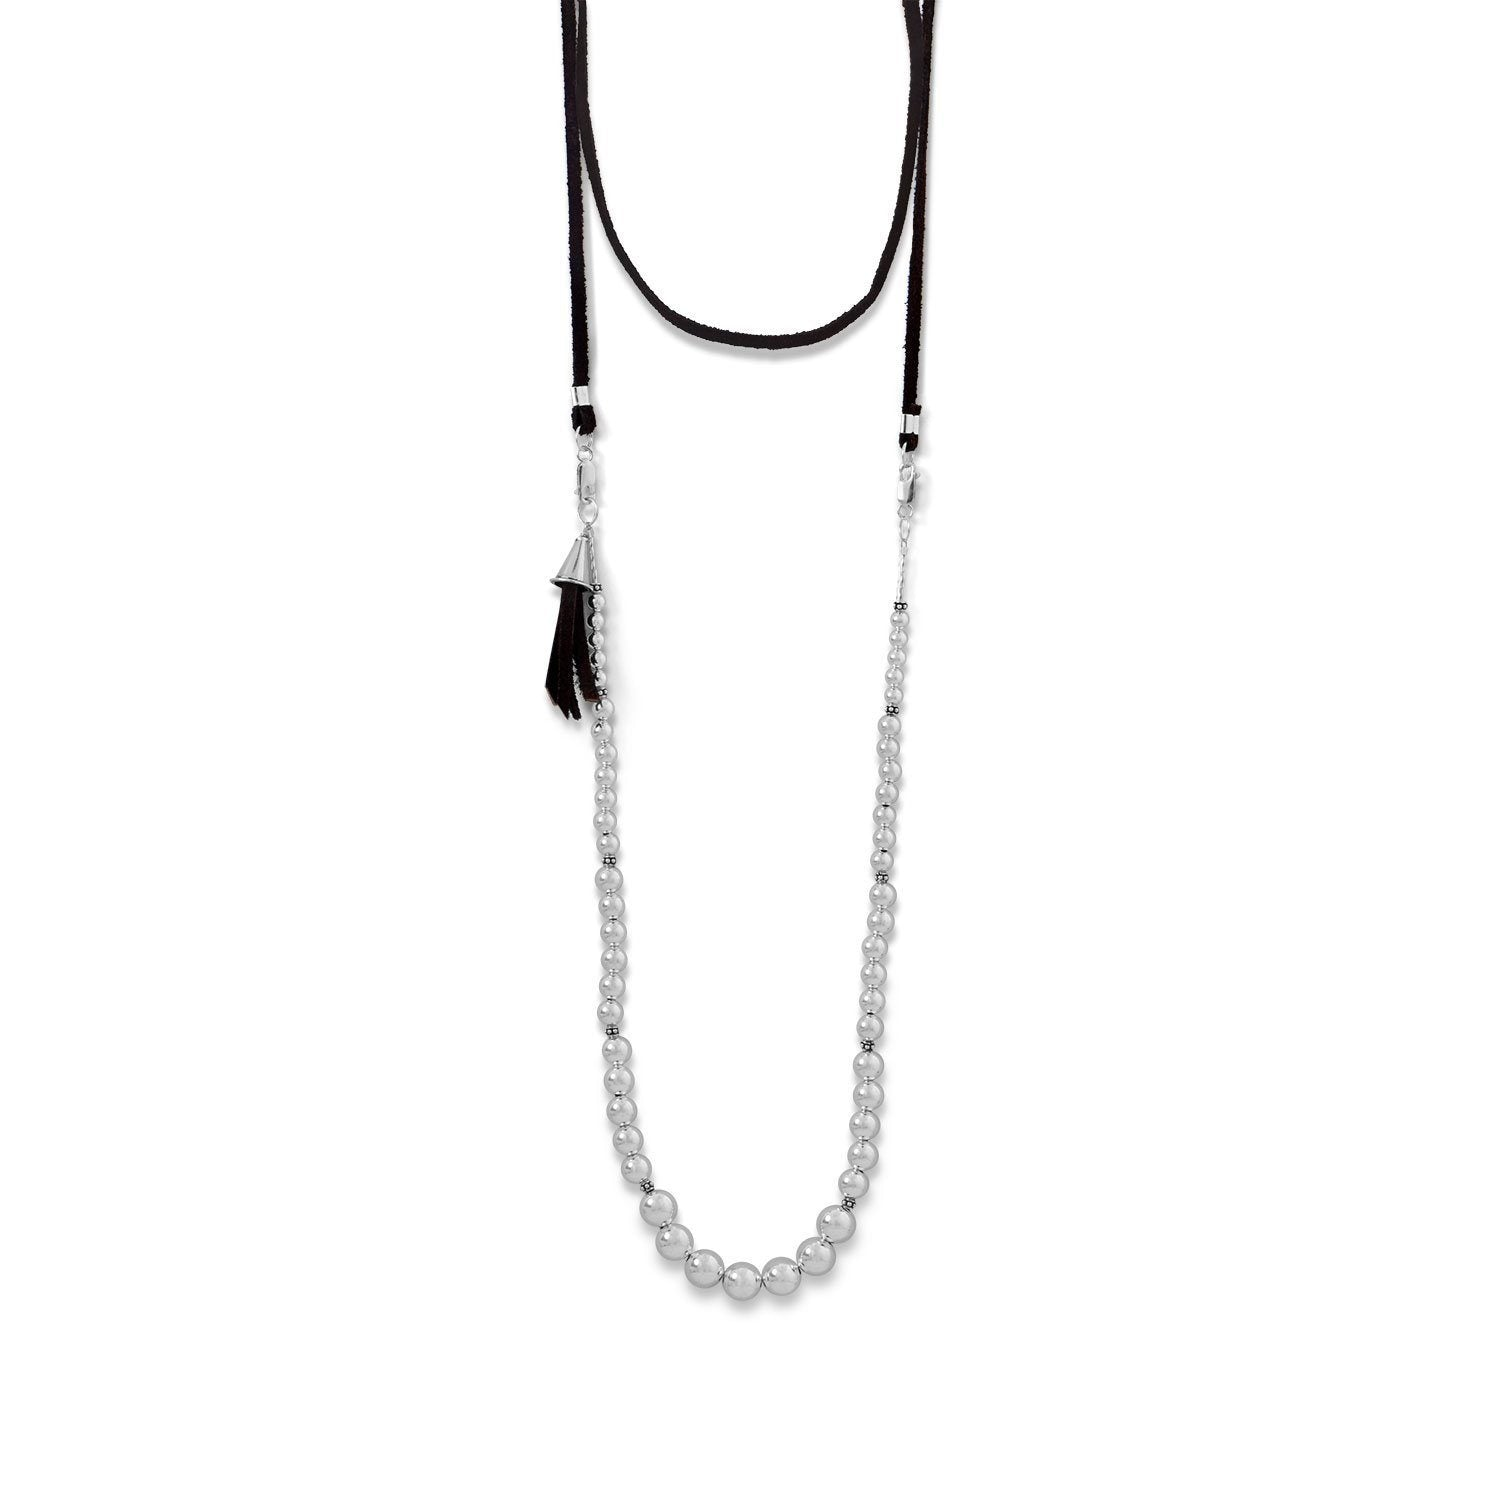 4-Way Suede and Silver Bead Necklace - Cece & Me - Home and Gifts